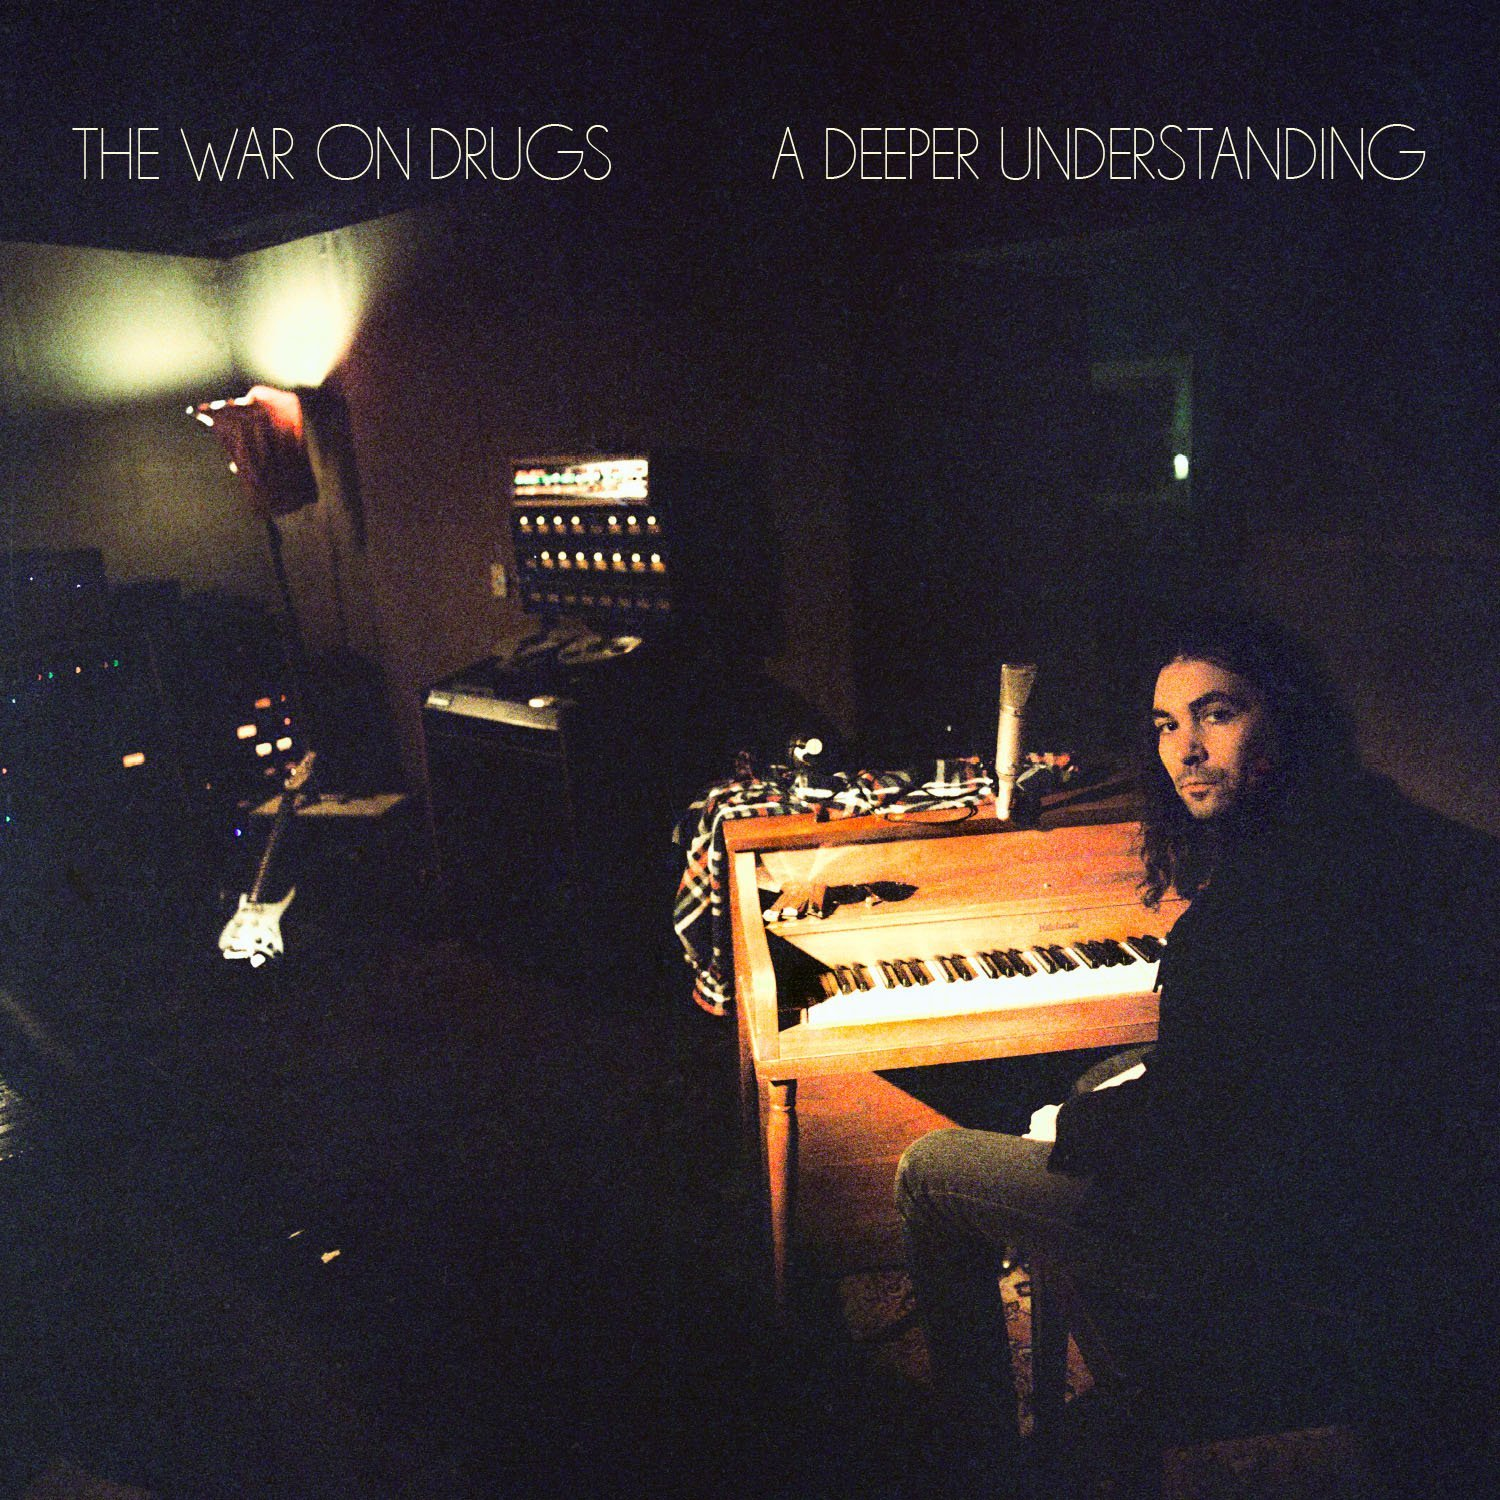 The War on Drugs, 'Strangest Thing' | Track Review